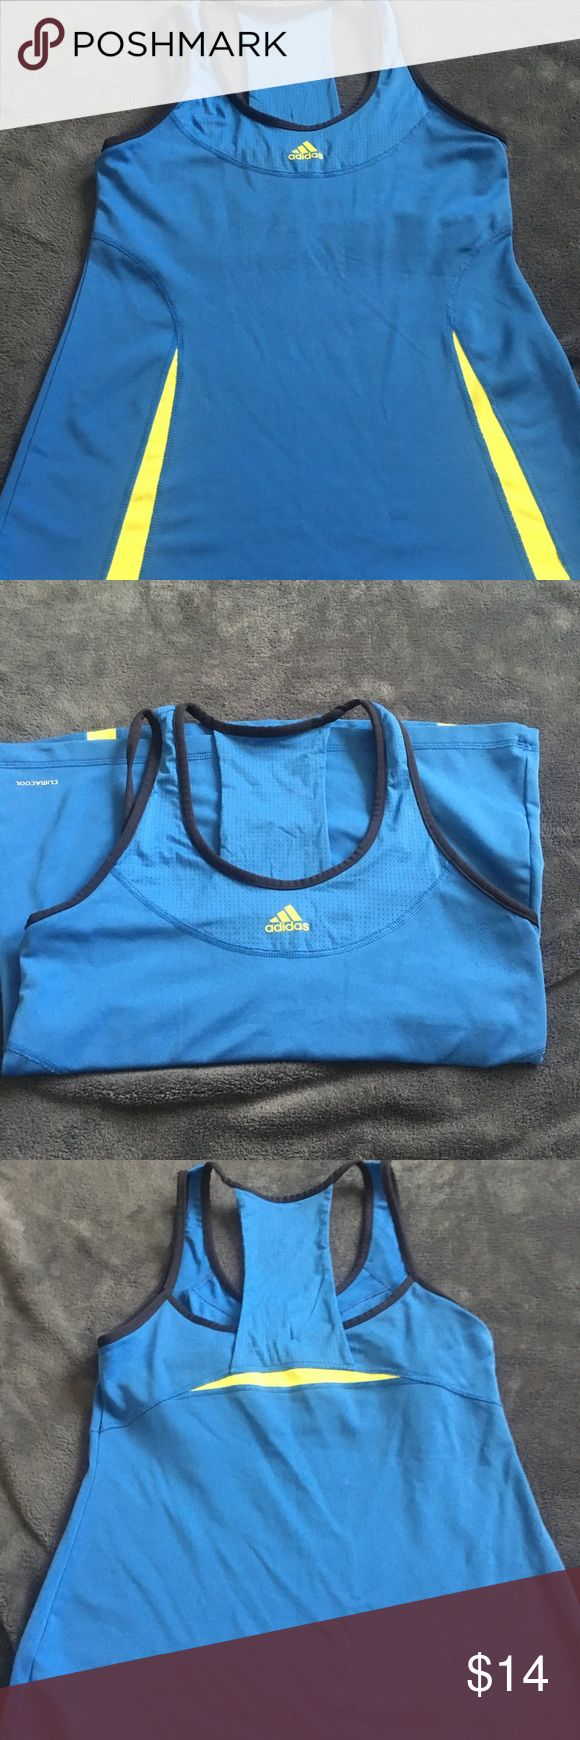 Adidas Clima workout too with built in sports bra. Blue Adidas Clima workout top. Has a built in bra. Perfect for running. Also pairs well with yoga pants for a casual day out. adidas Tops Tank Tops